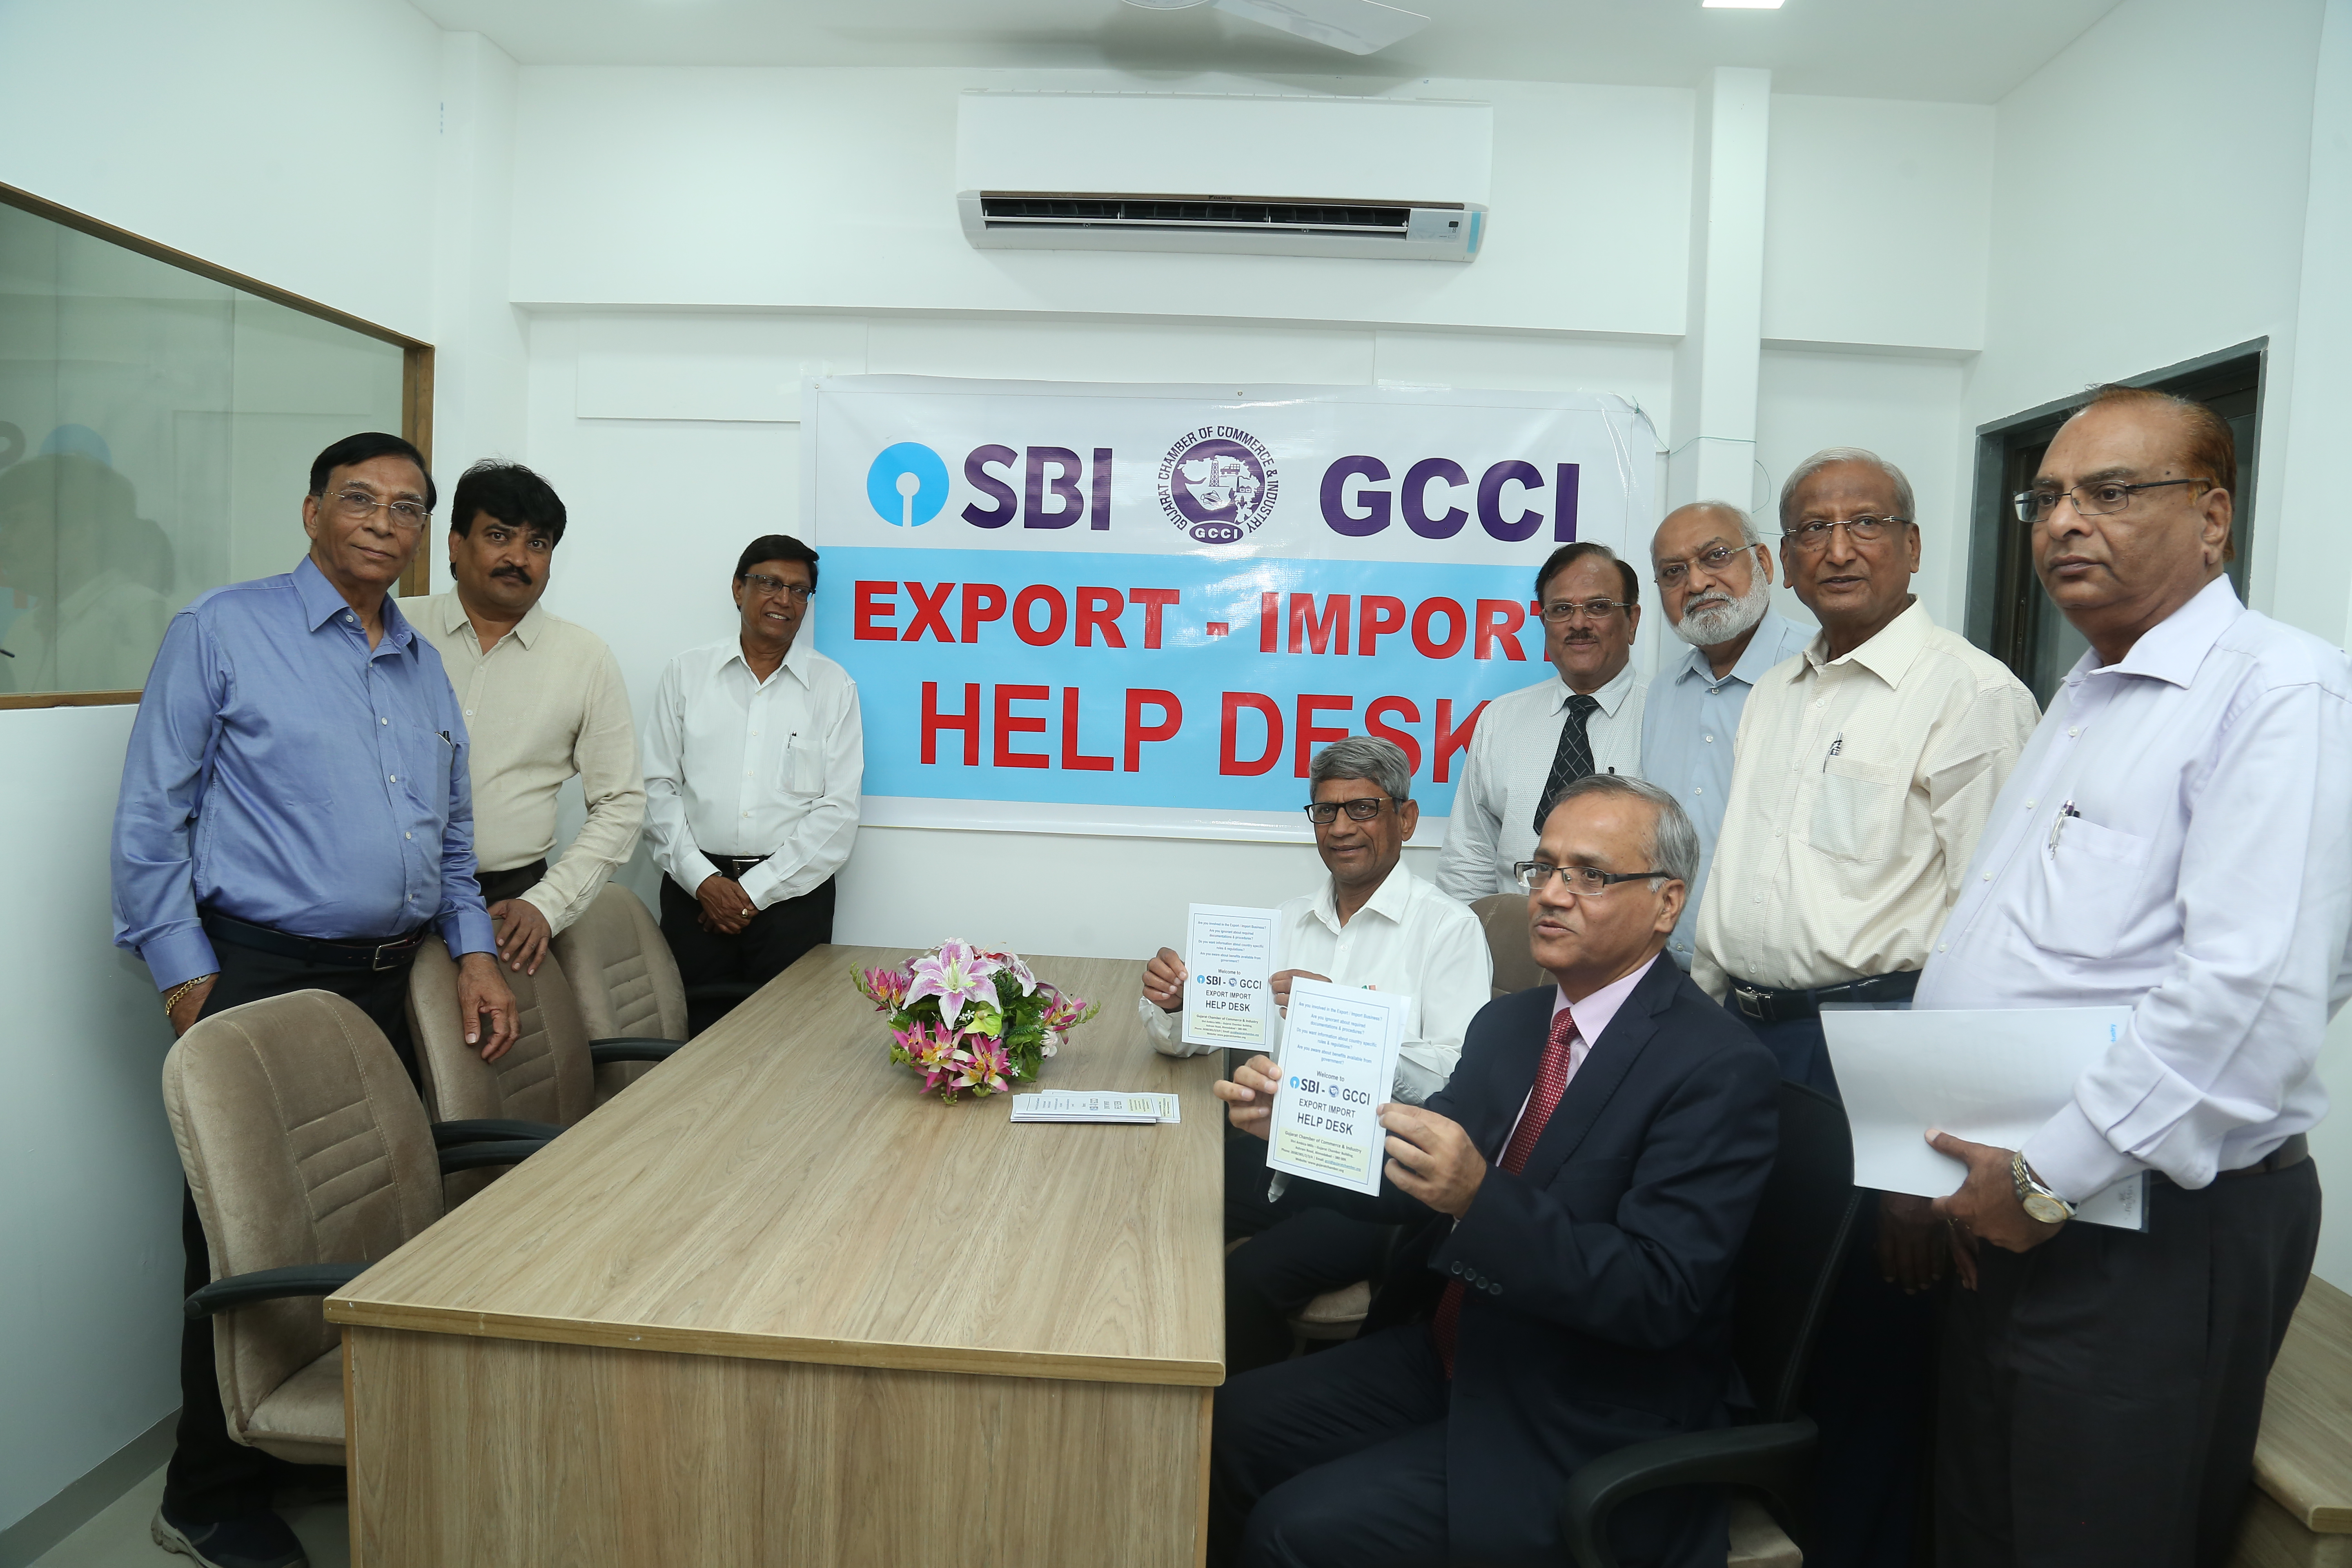 GCCI has set up an SBI- GCCI Export Import Help Desk which be officially launched